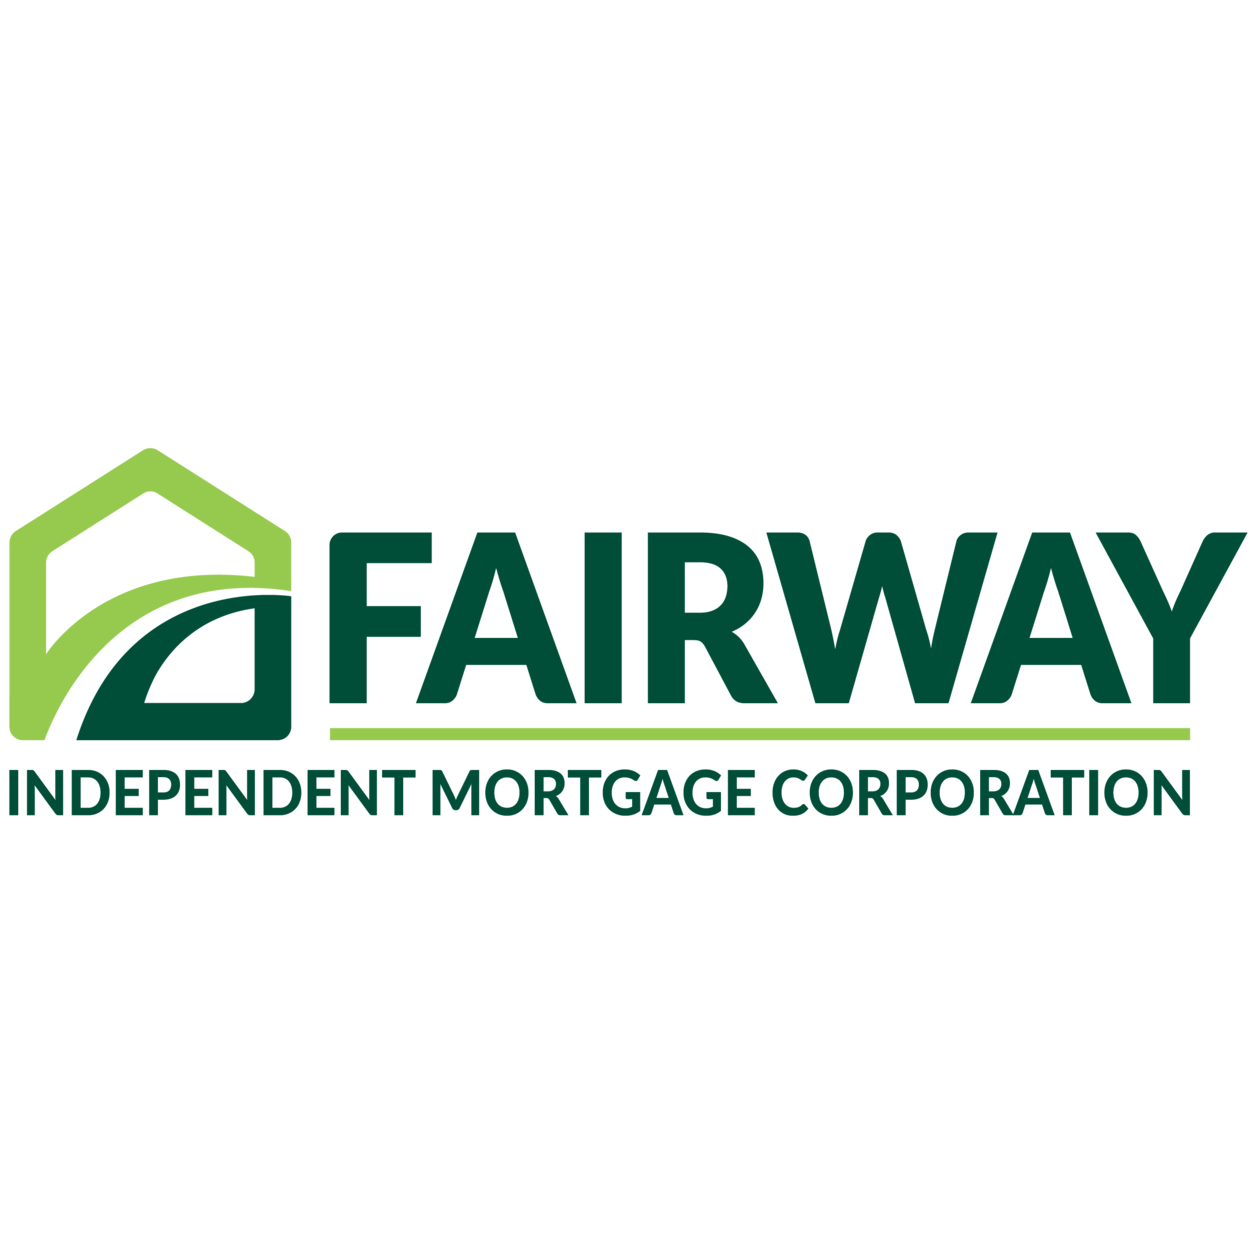 Michael Inkman | Fairway Independent Mortgage Corporation - Plano, TX - Mortgage Brokers & Lenders